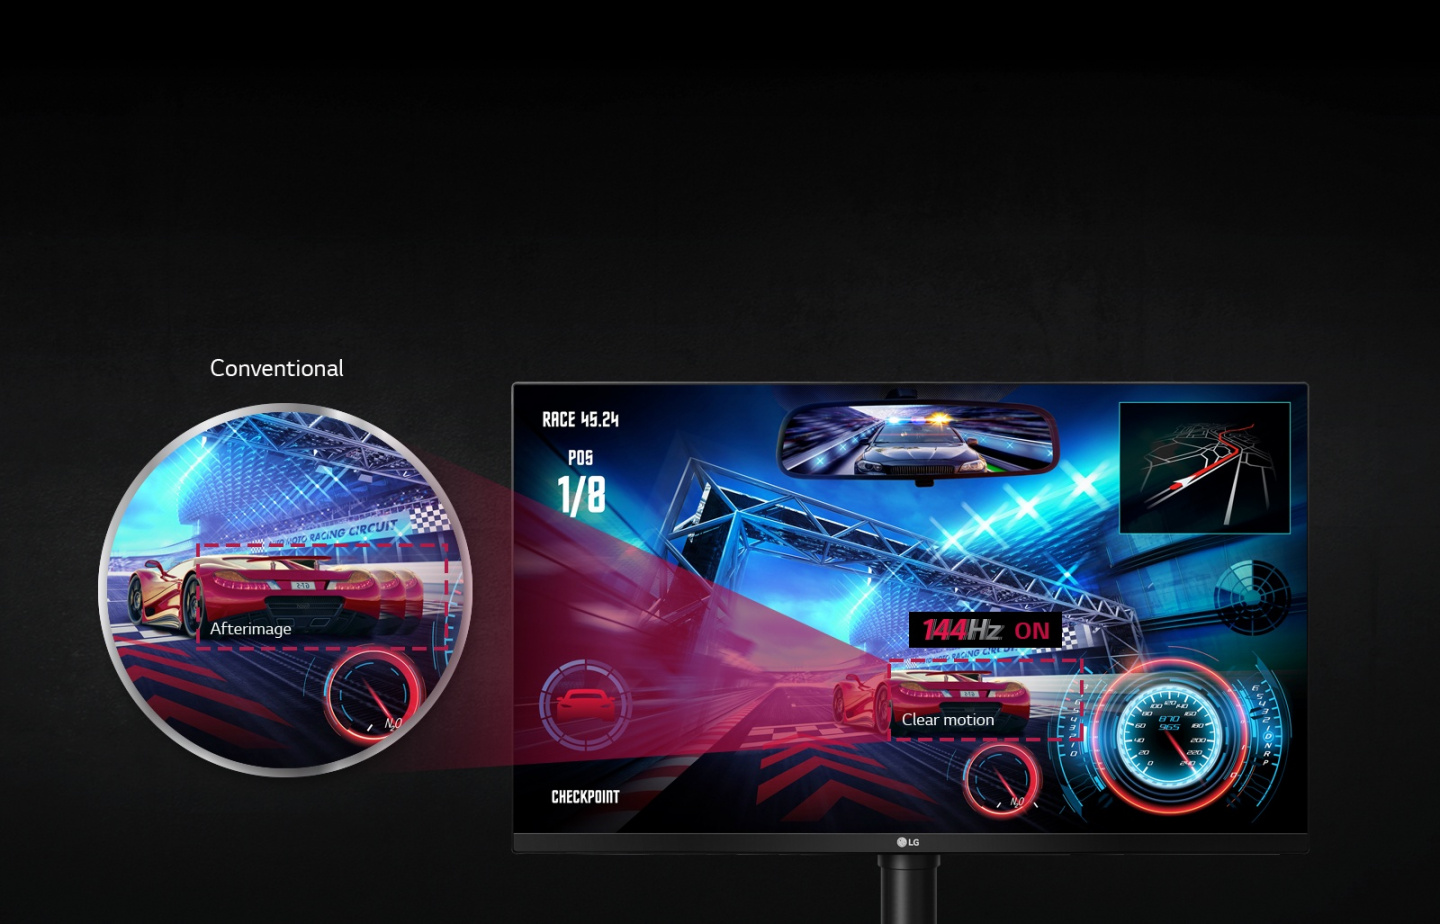 Buy The Lg 32gk850g 32 Nvidia G Sync Gaming Monitor 2560x1440 Dot Matrix Display Circuit Board Rotating Electronic Kit Alex Nld Add New Excitement To Your Space With Striking Led Effects Of Sphere Lighting Gamers Can Customize An Array Different